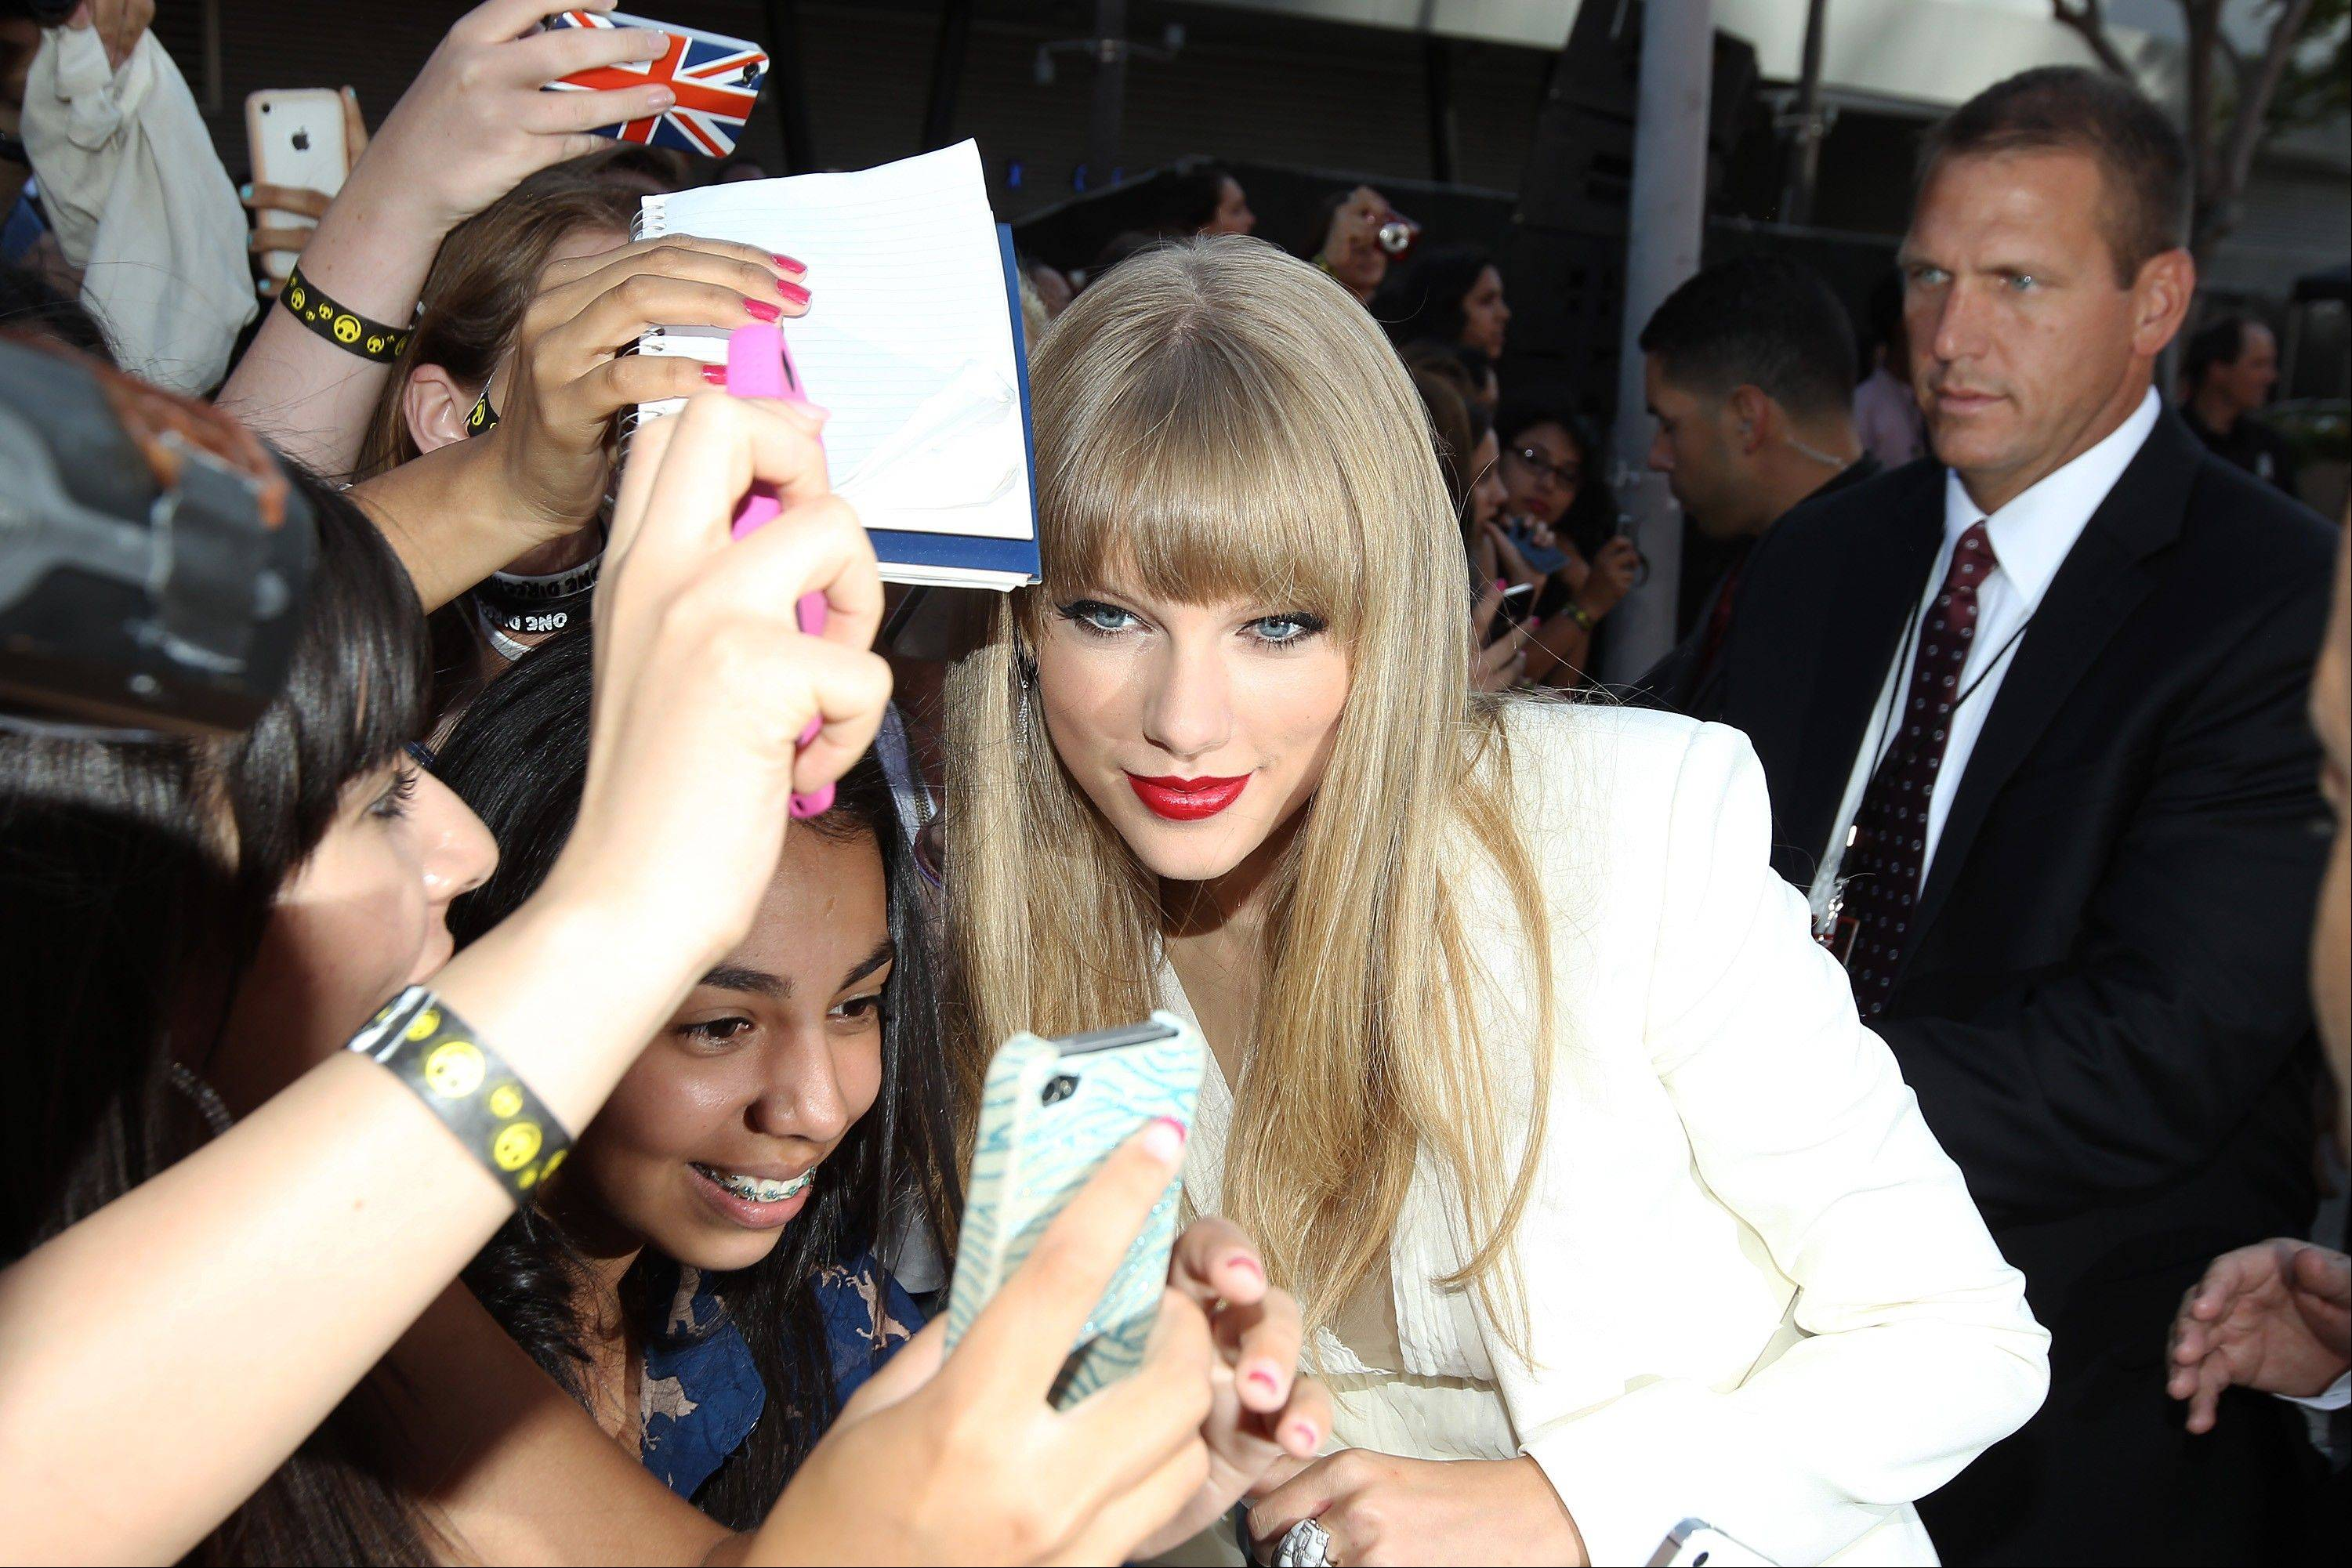 Taylor Swift greets fans at the MTV Video Music Awards on Thursday, Sept. 6, 2012, in Los Angeles.